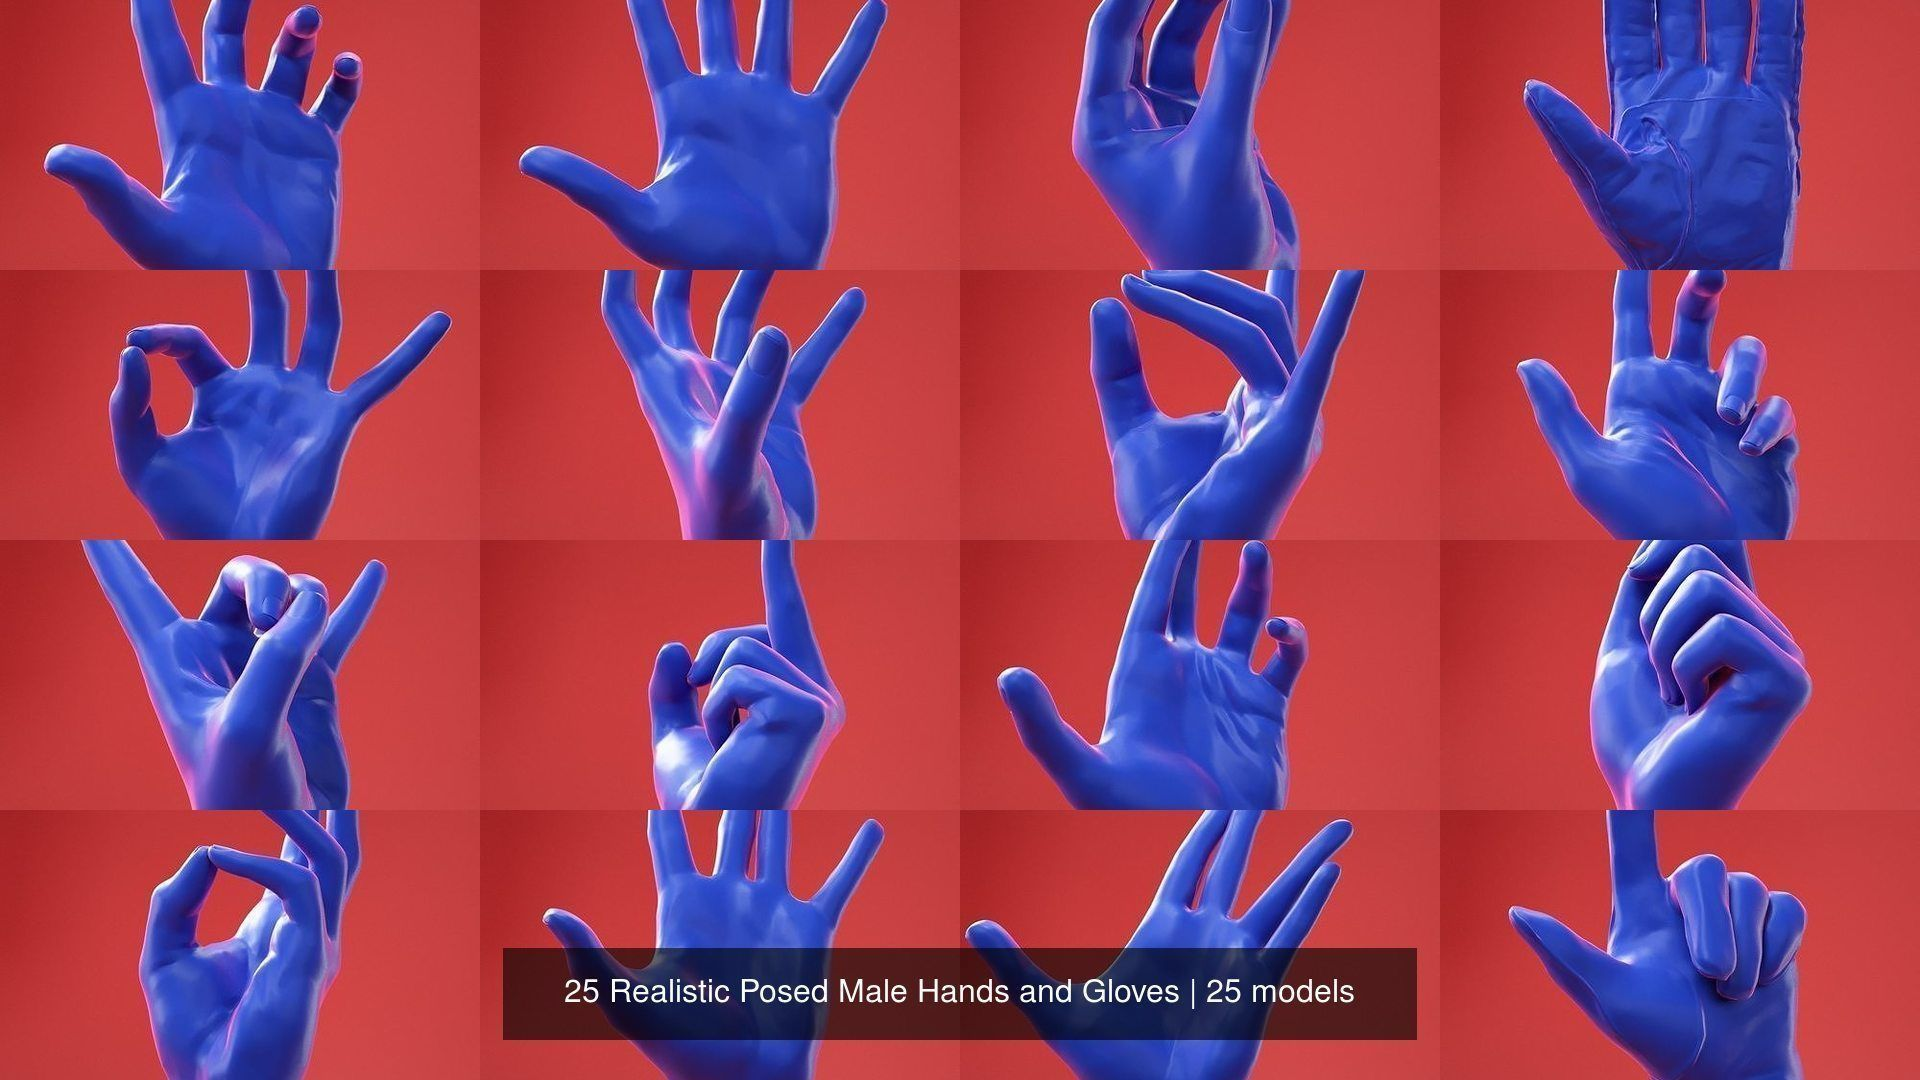 25 Realistic Posed Male Hands and Gloves